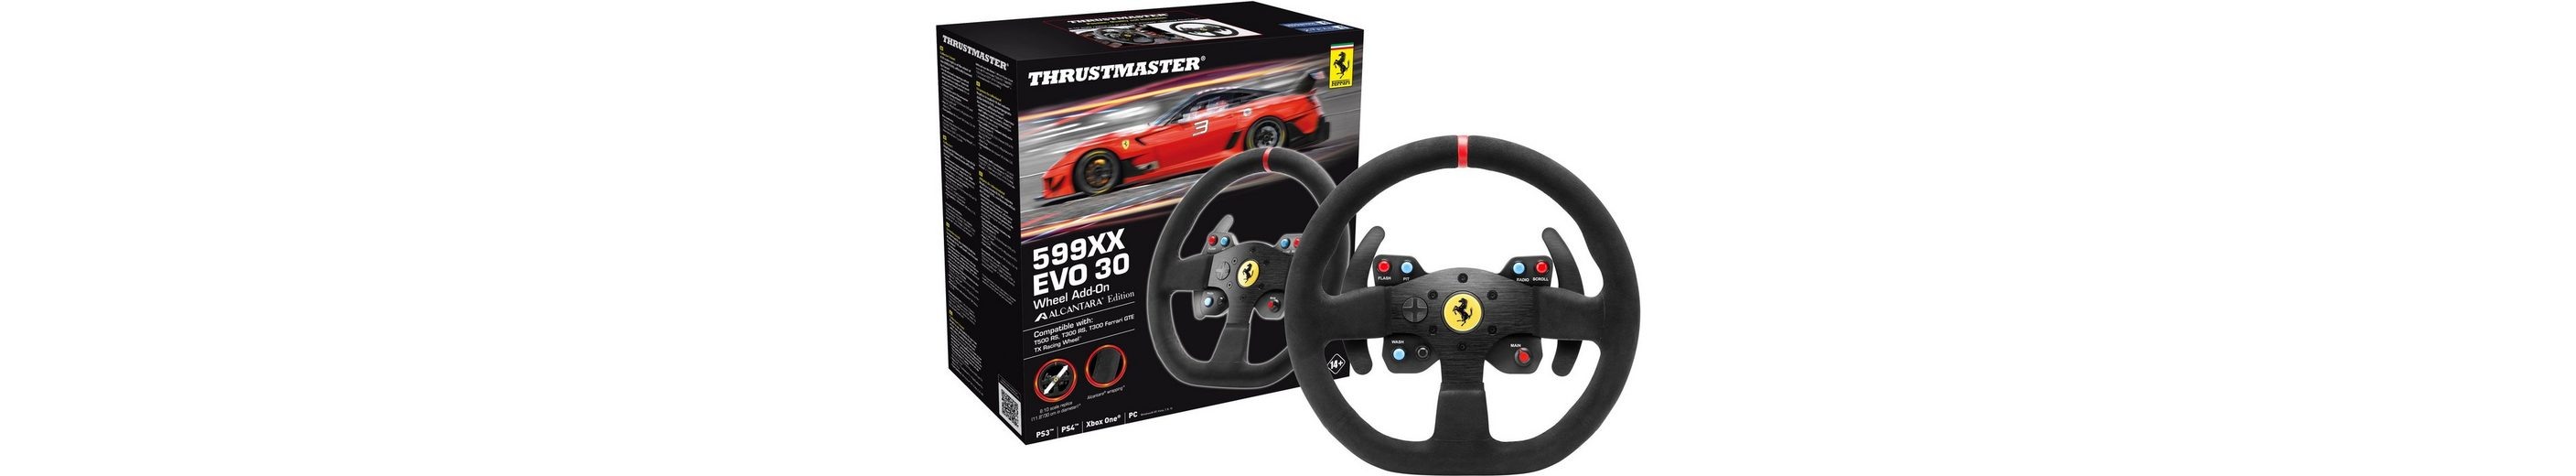 Thrustmaster F599XX EVO 30 Wheel AddOn Alcantara Edition (T300/T500) »(PS4 PS3 PC XBox One)«